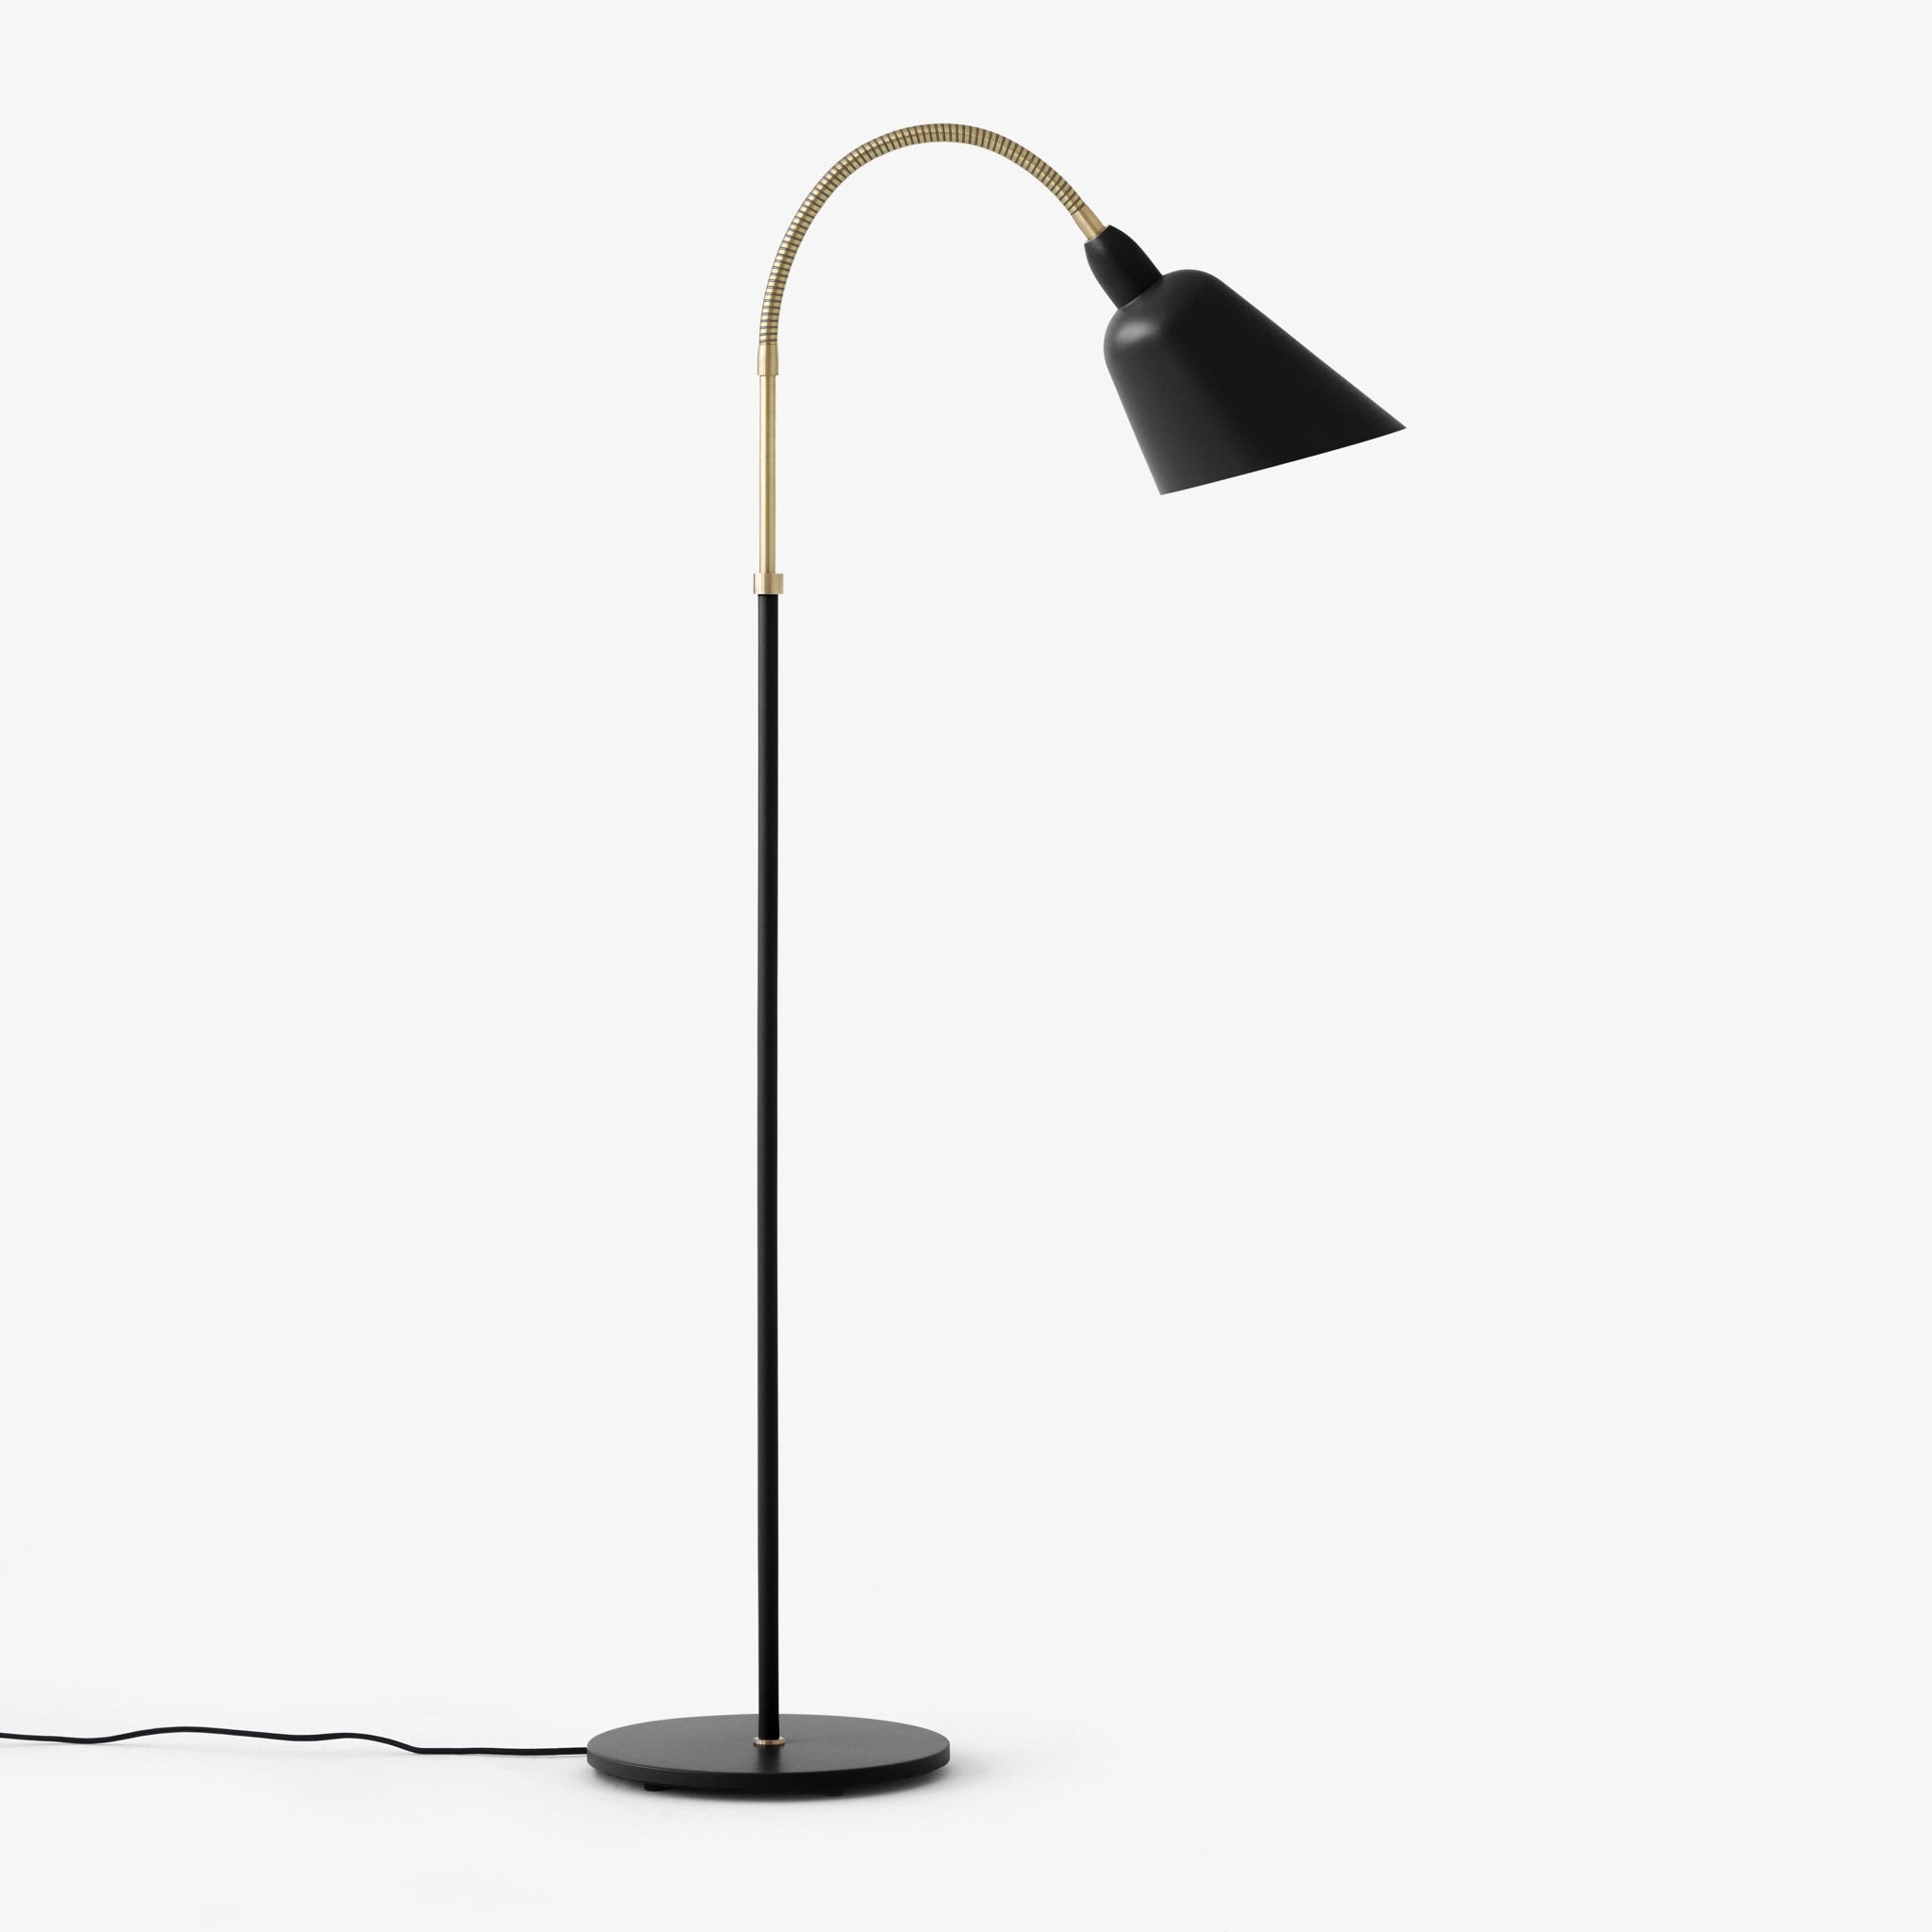 Bellevue Floor Lamp AJ7 by Arne Jacobsen